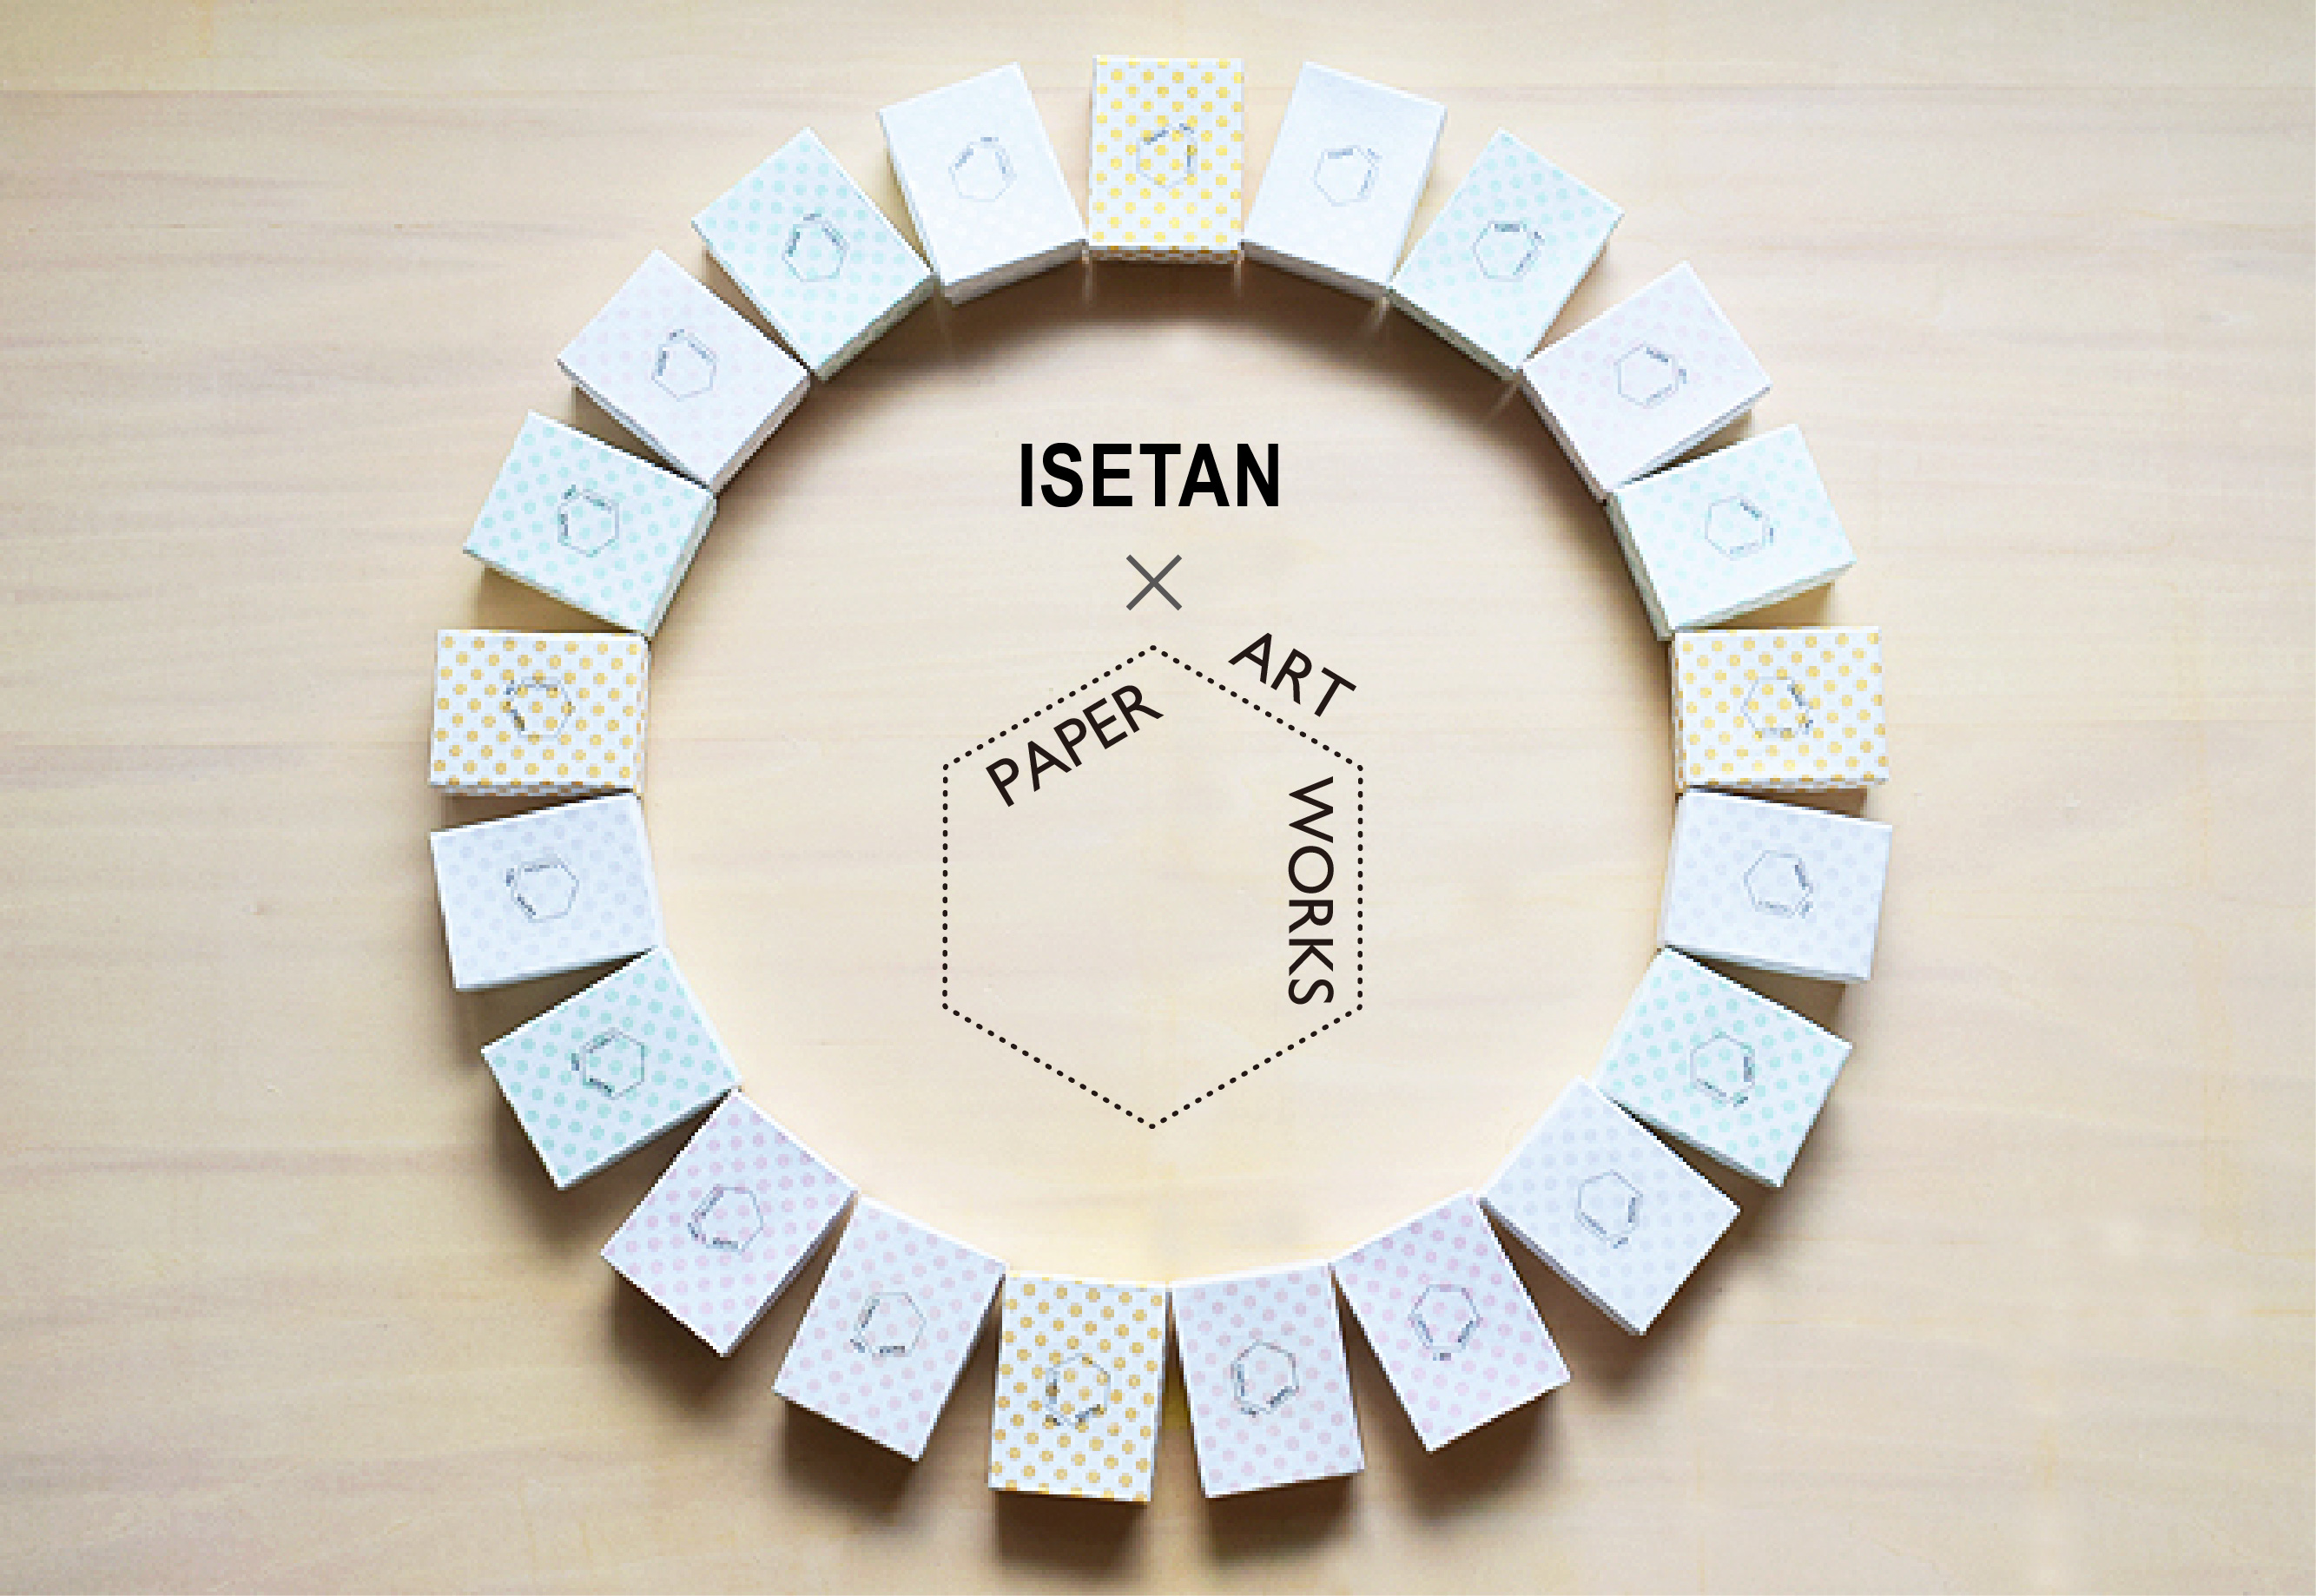 isetan package logo